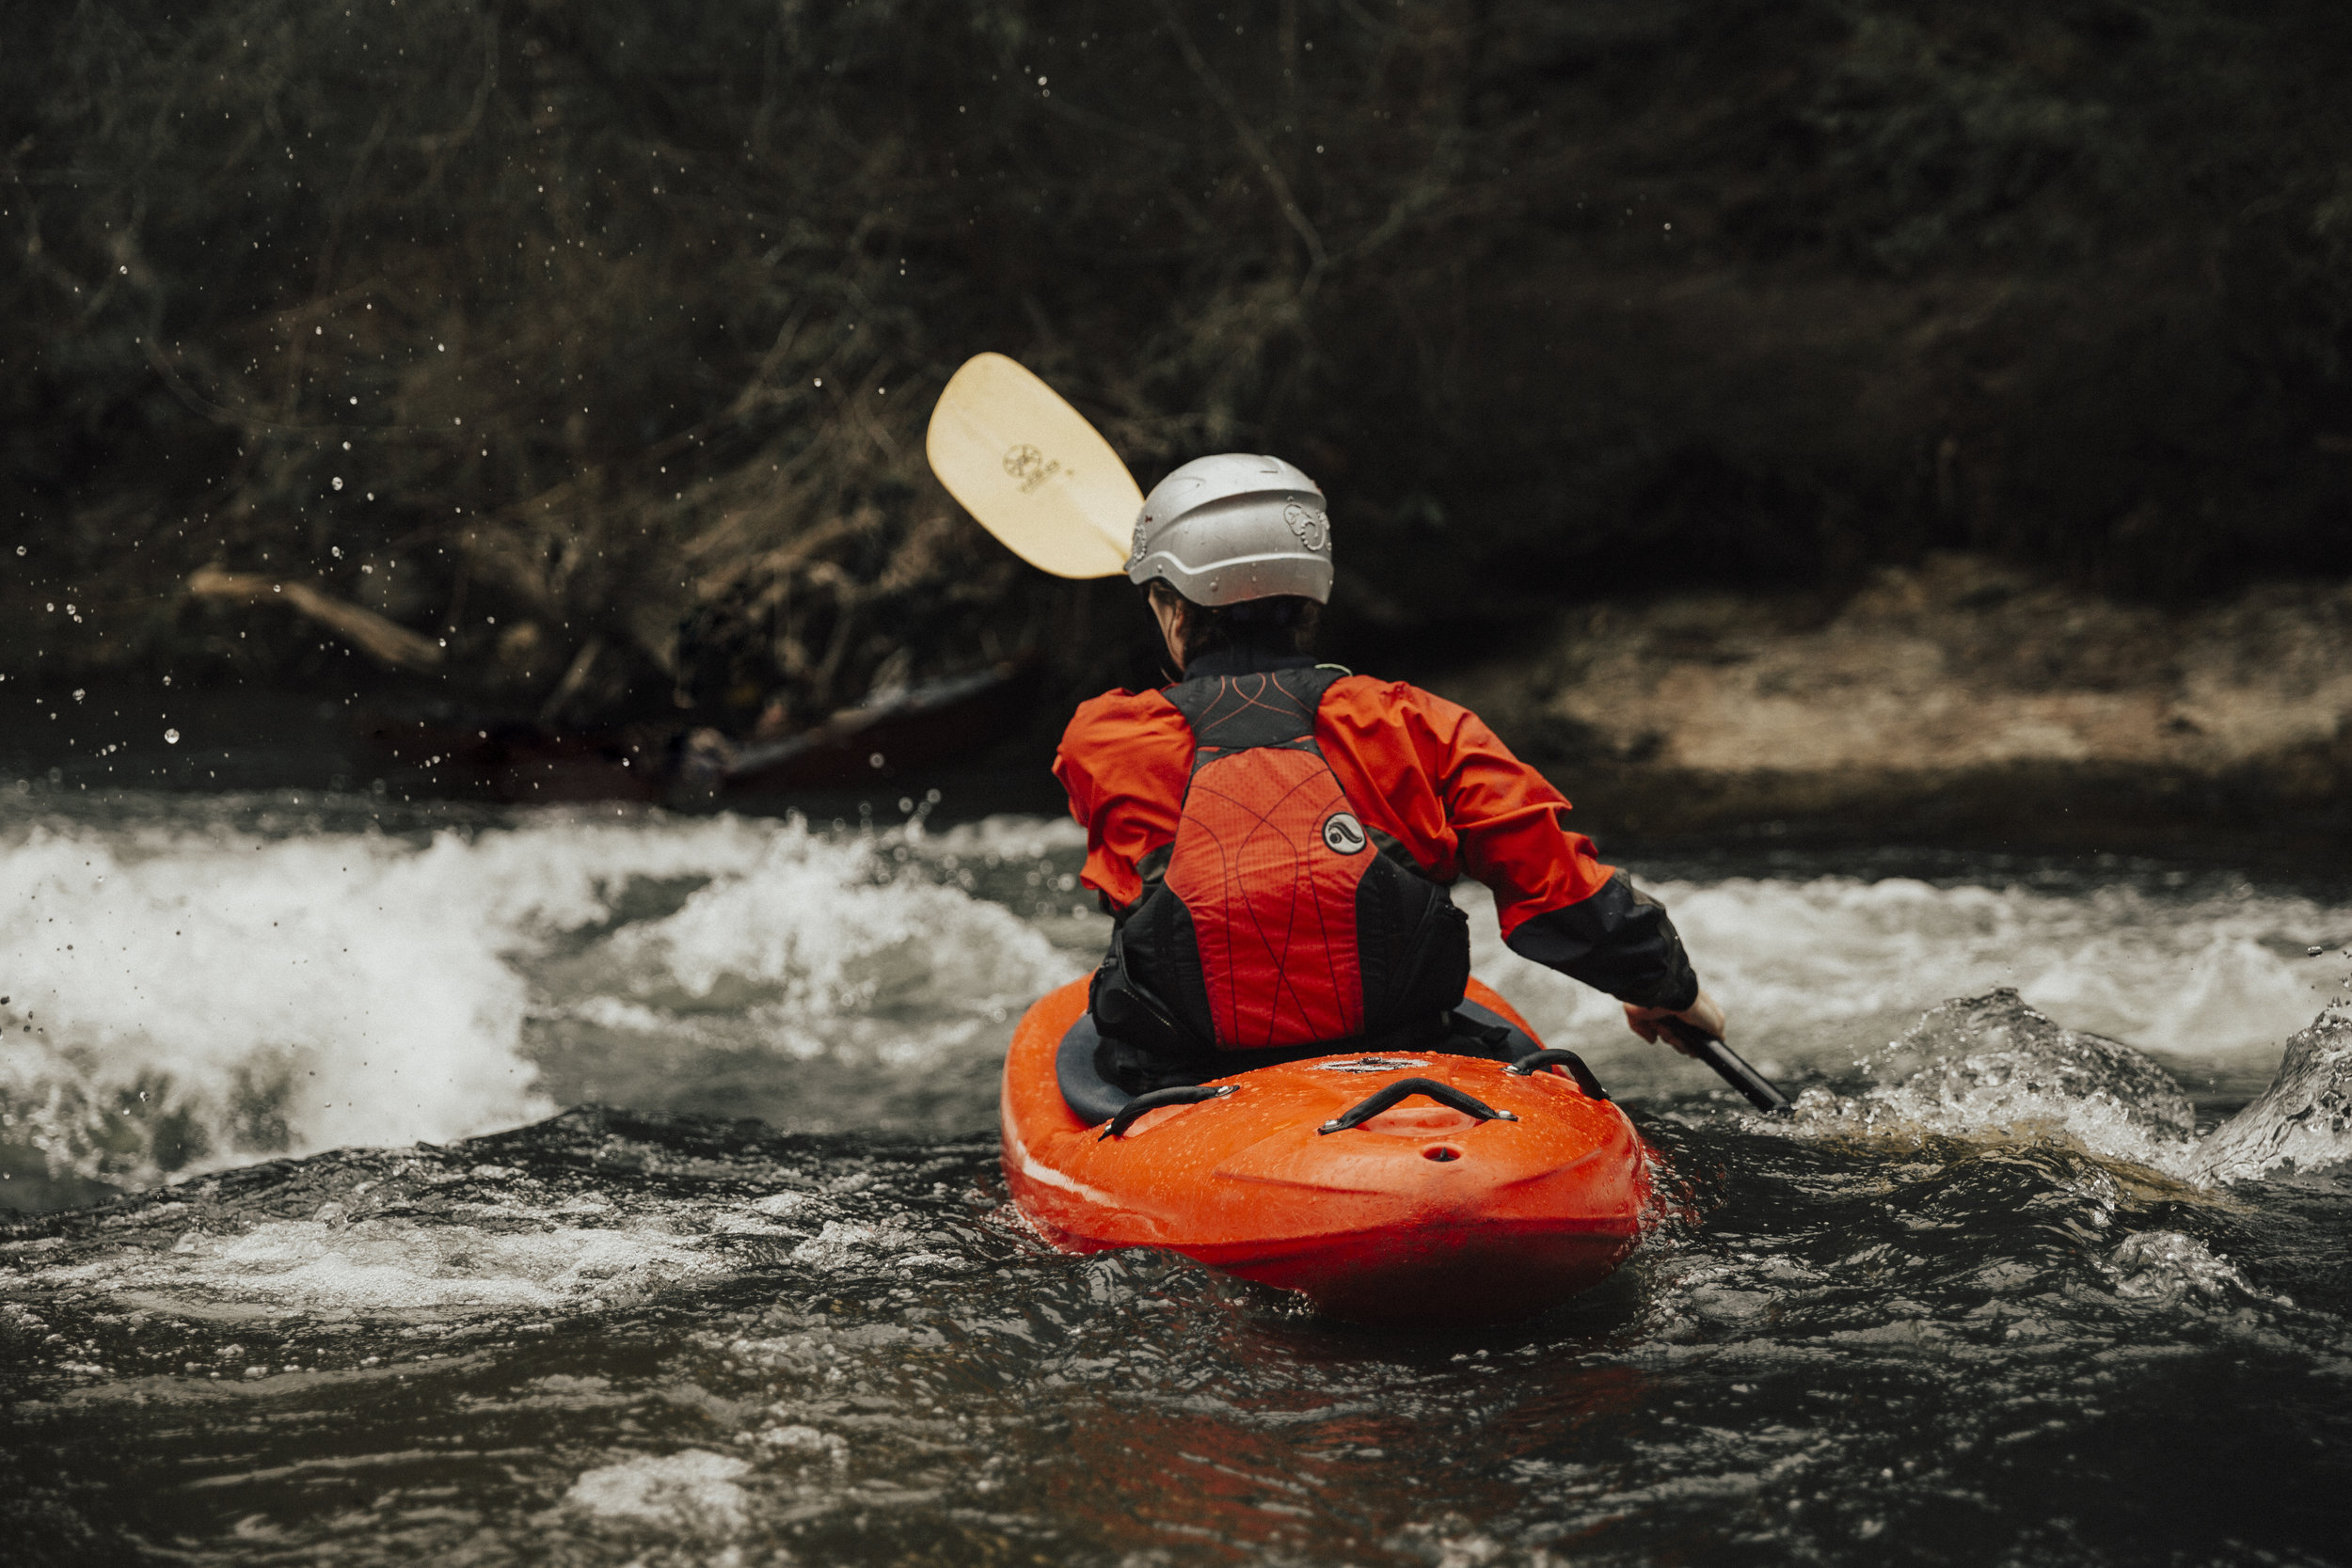 Kayaks do not require as big of a vehicle, they take less resources to build, and in general, unless misused, are one of the more environmentally friendly boating activities.